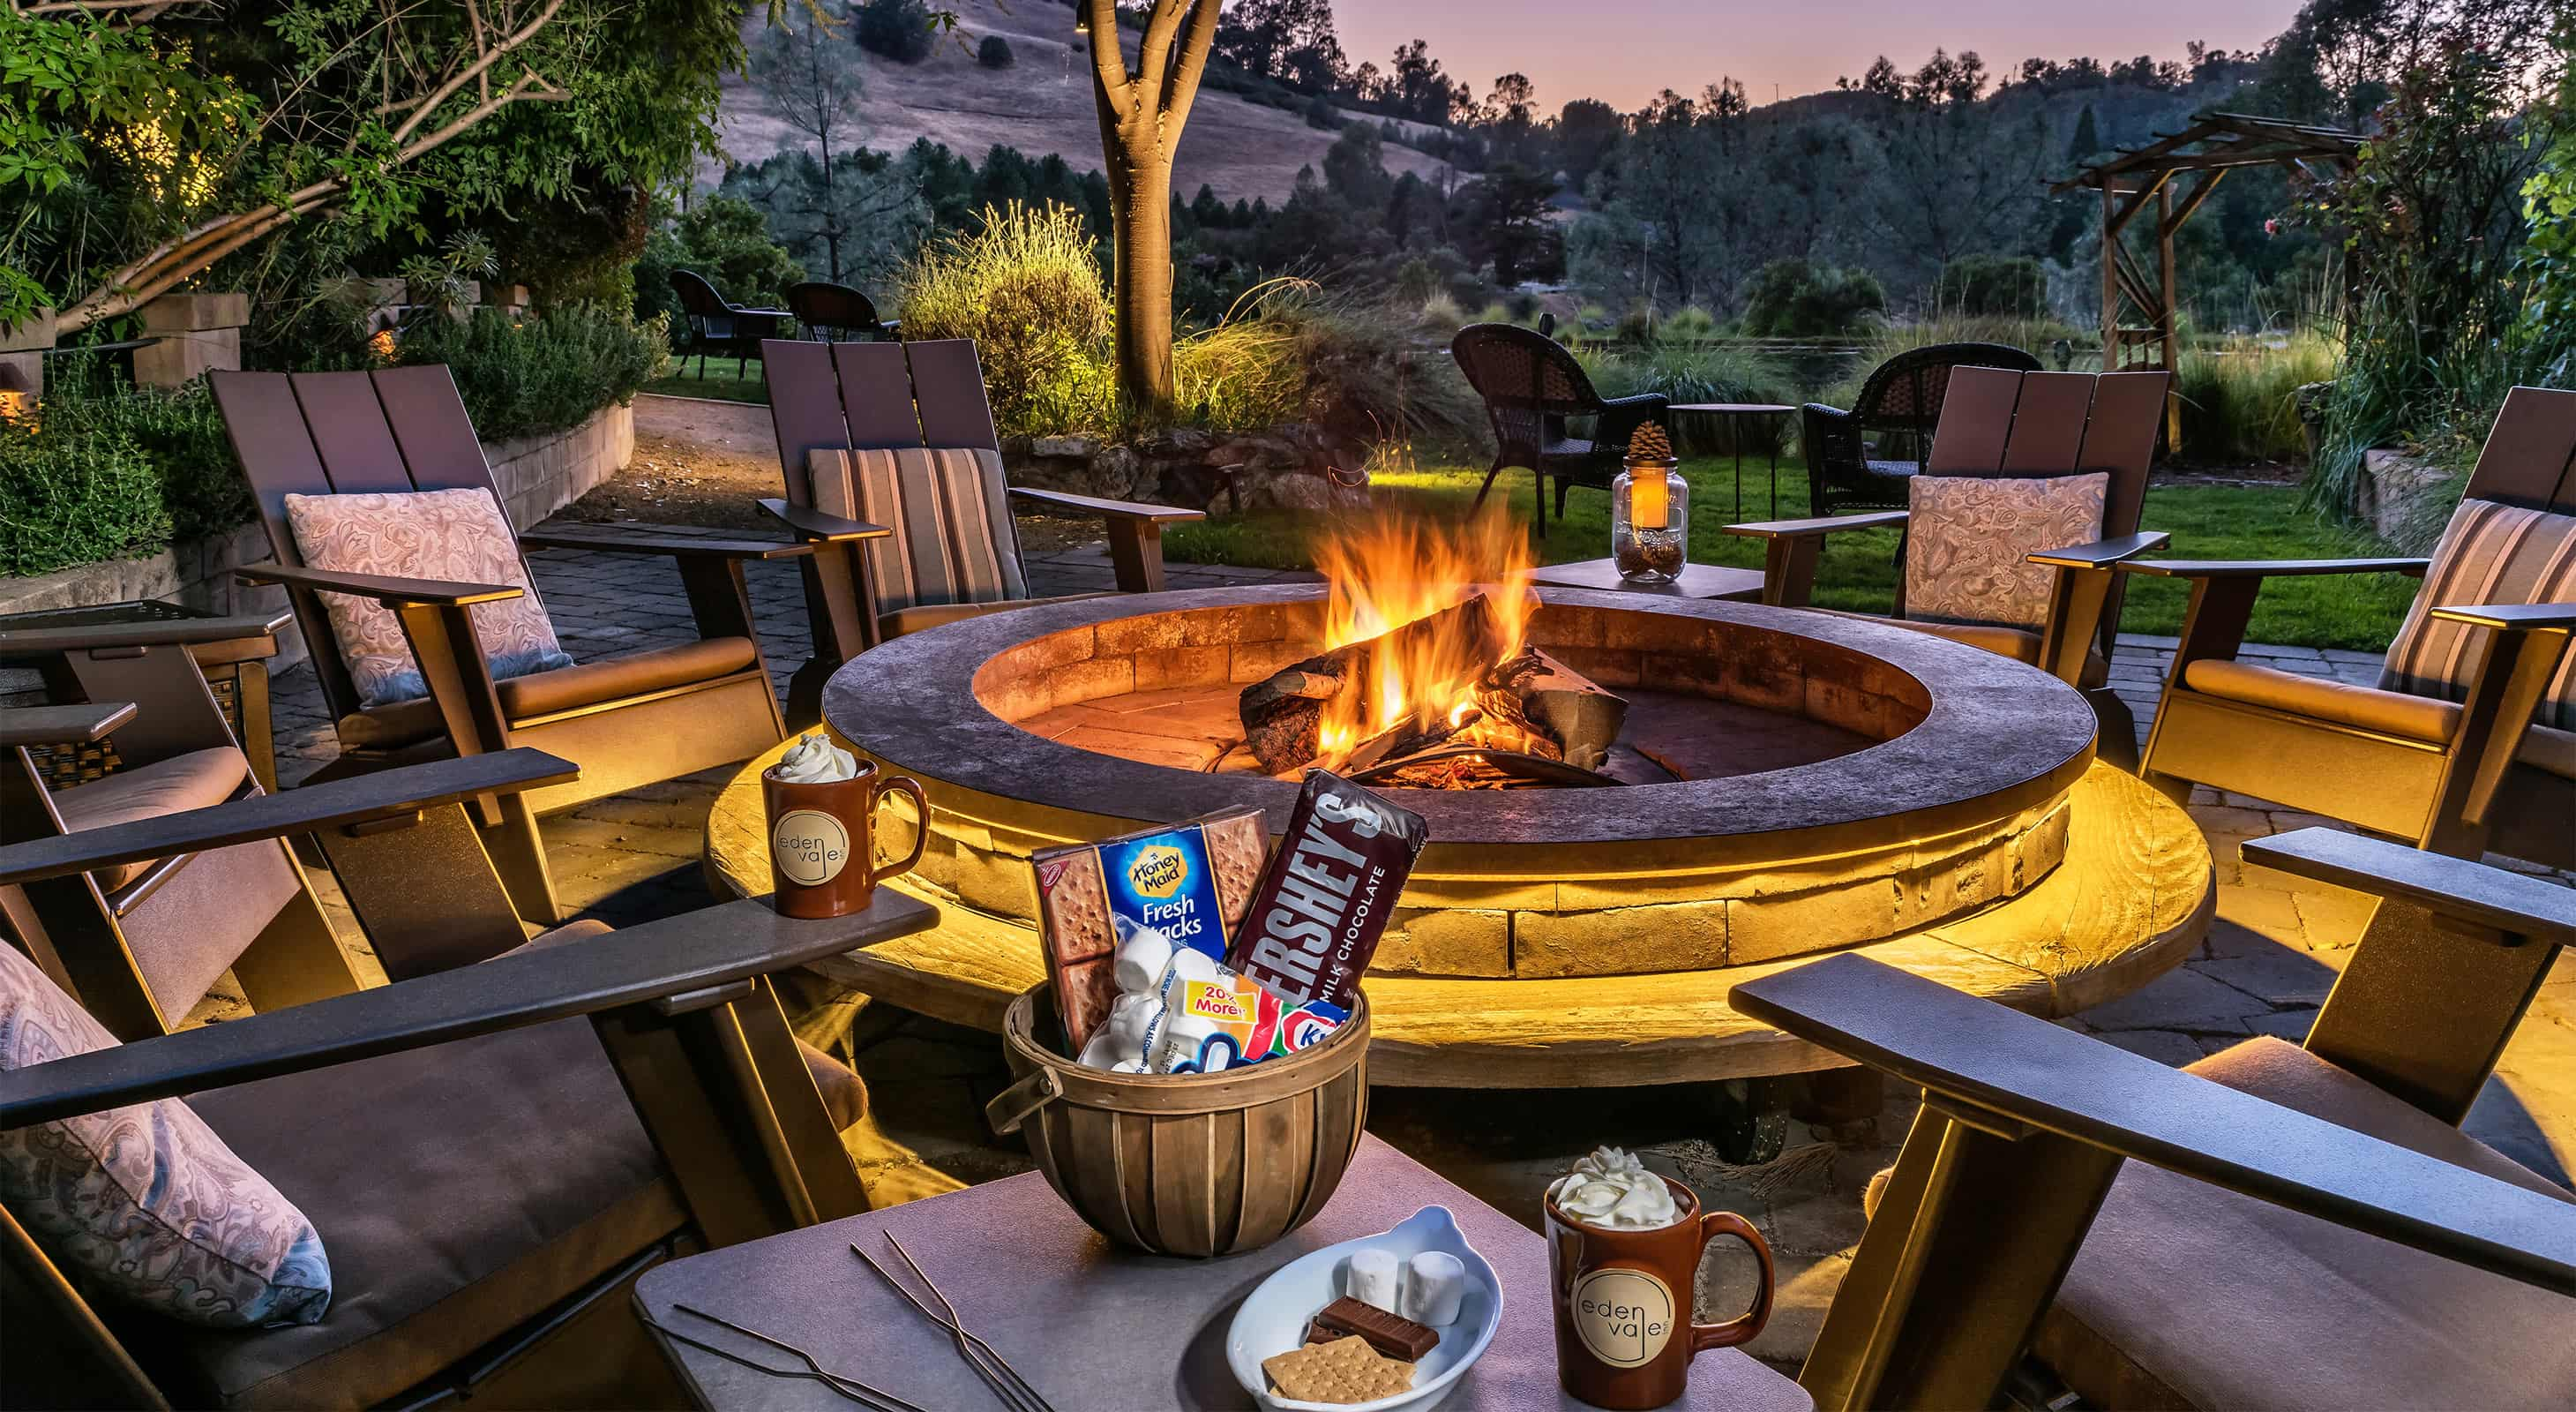 Fie pit at night with basket for S'Mores